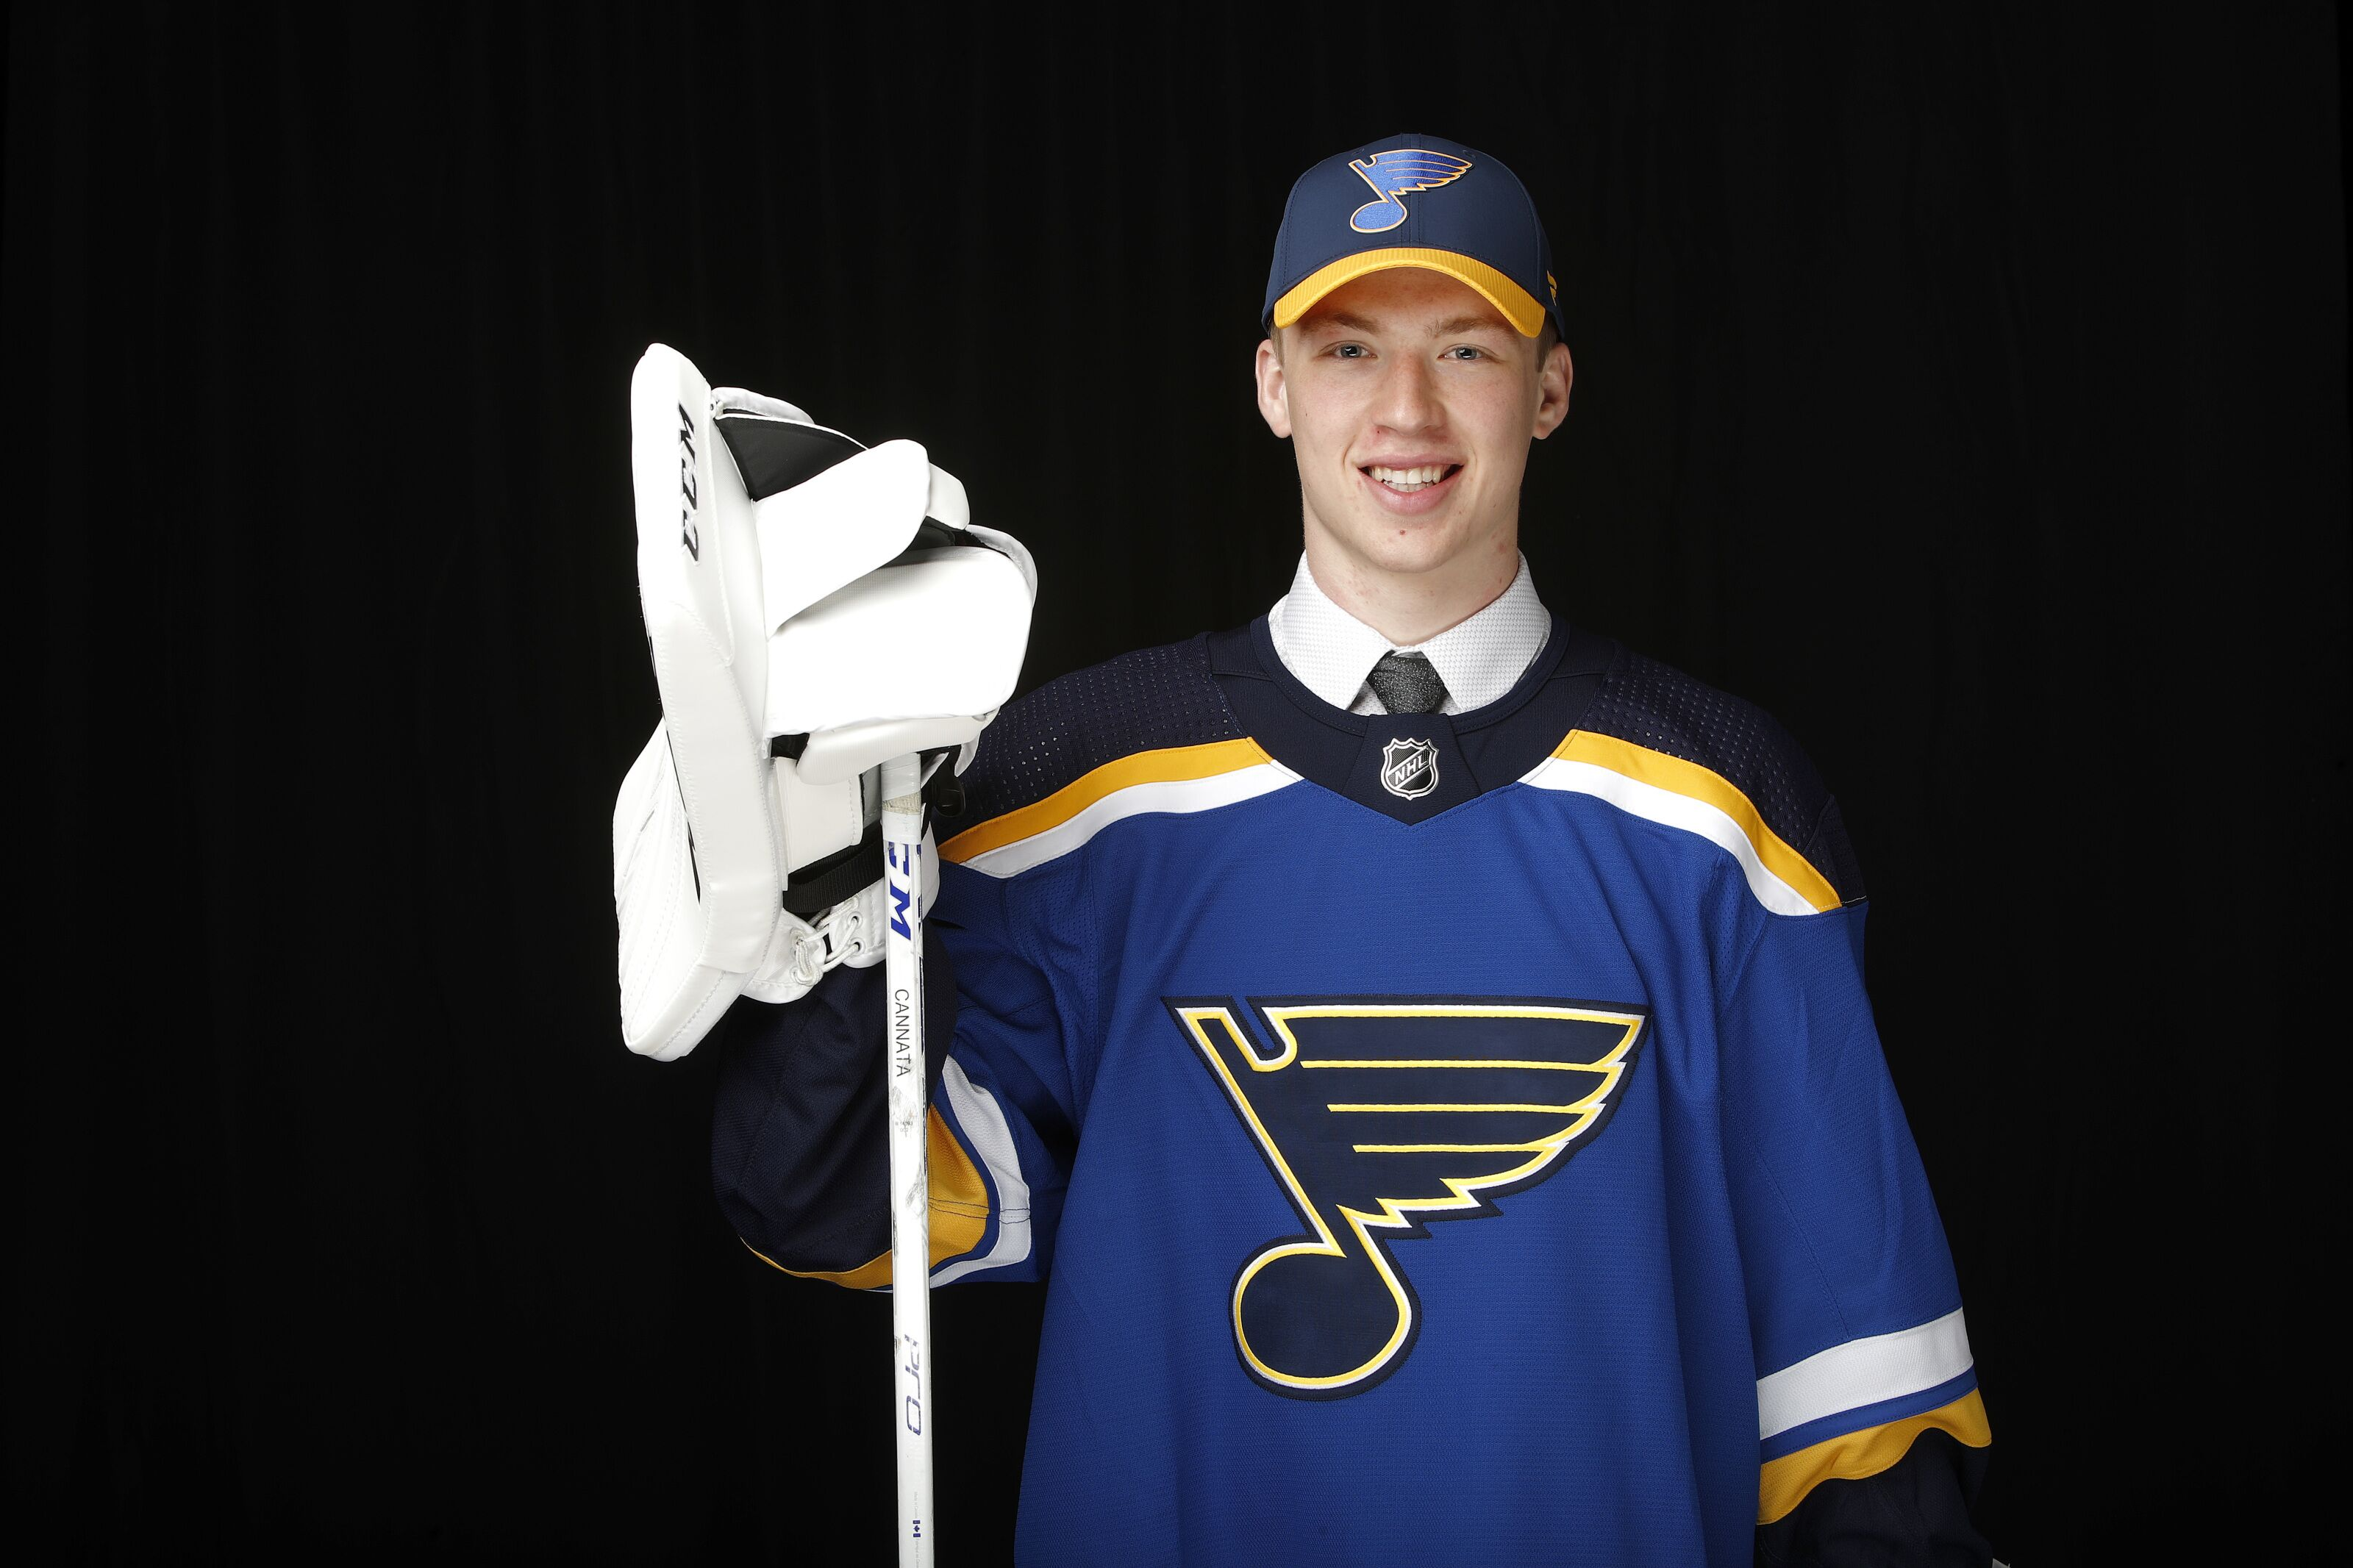 St. Louis Blues Prospect Hoping To Out-duel Canadian Goalies